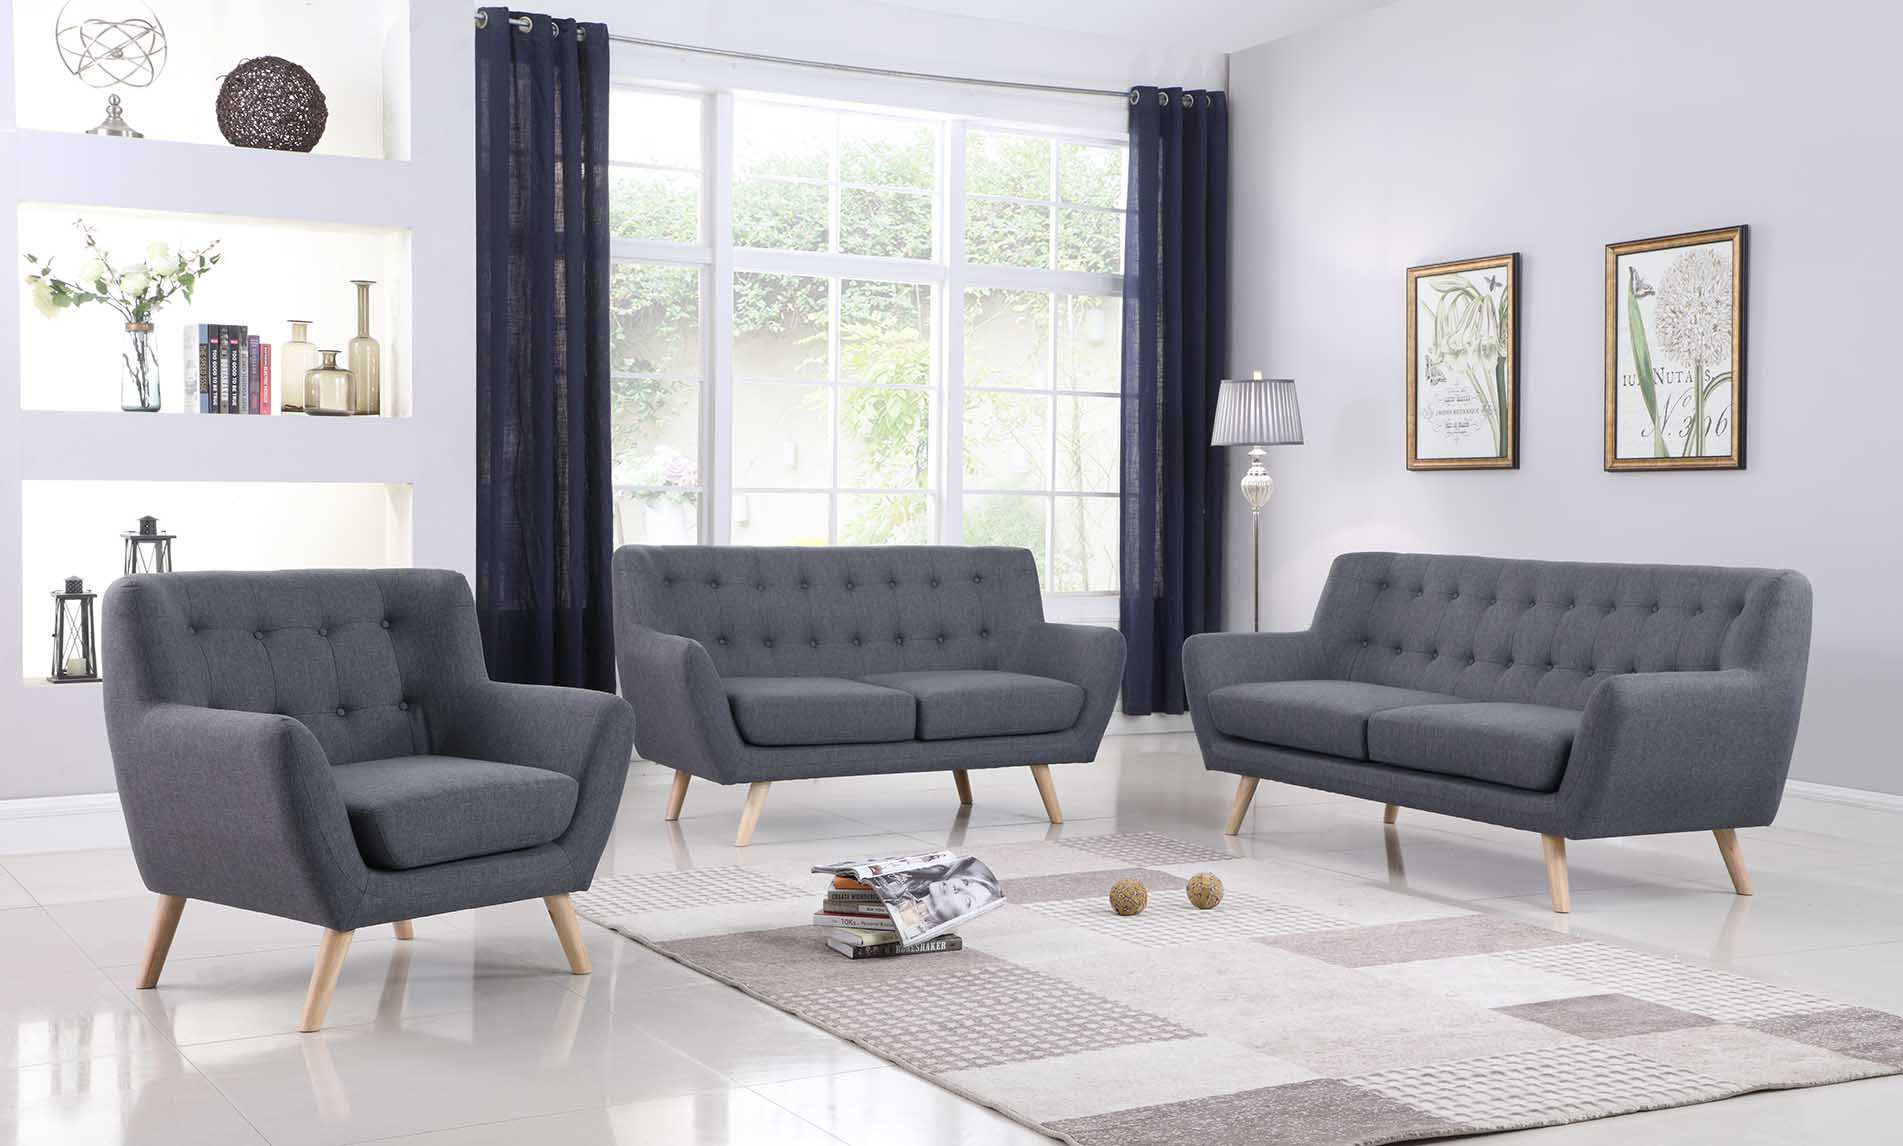 Astonishing Sofa Set Milton Greens Stars Lowest Price Possible With Unemploymentrelief Wooden Chair Designs For Living Room Unemploymentrelieforg